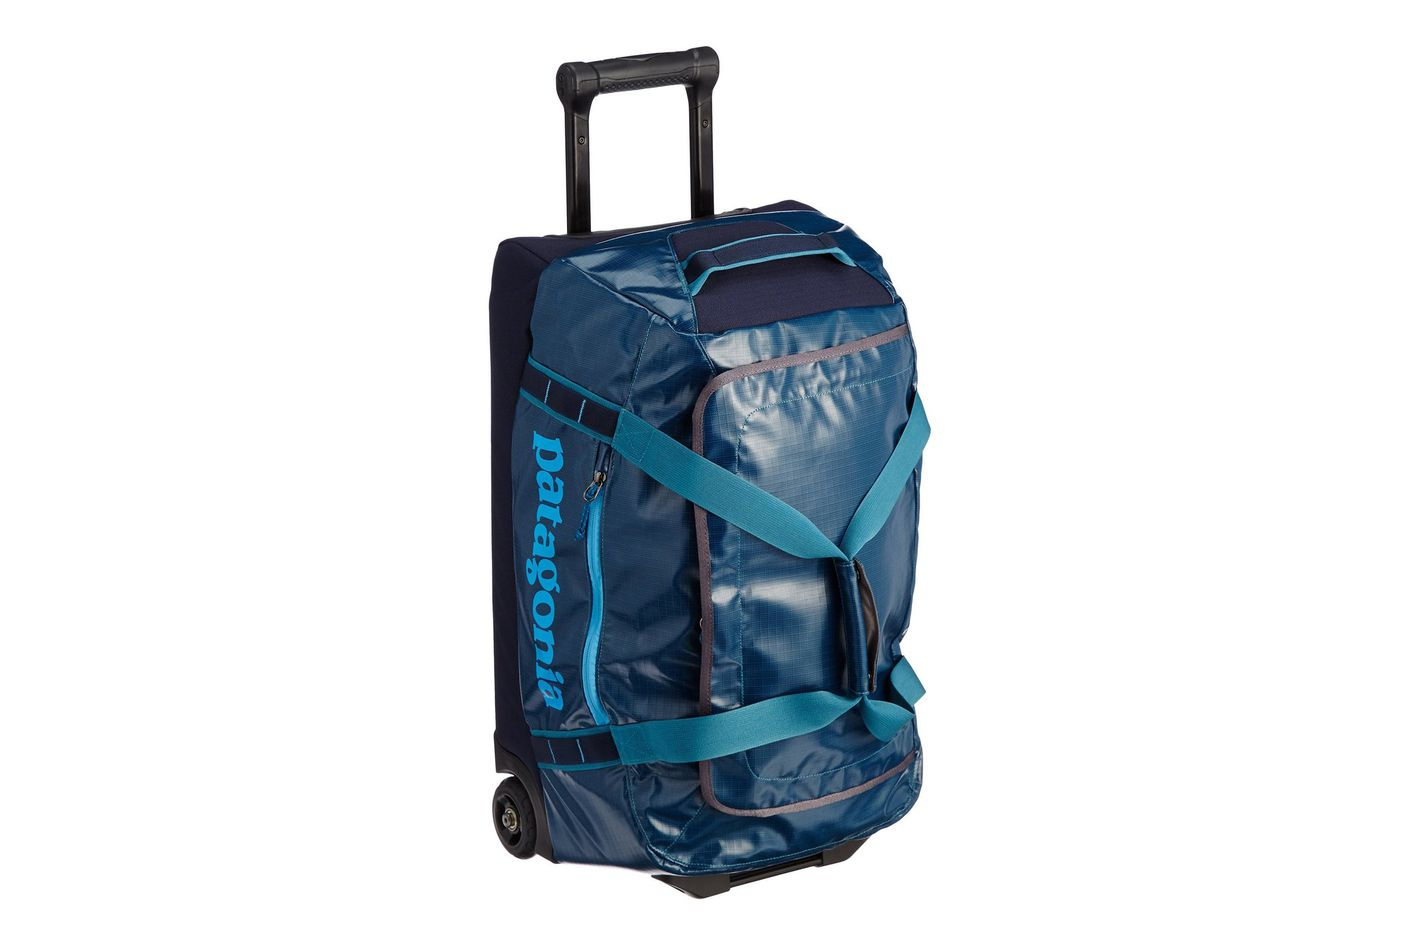 Best Patagonia Rolling Luggage